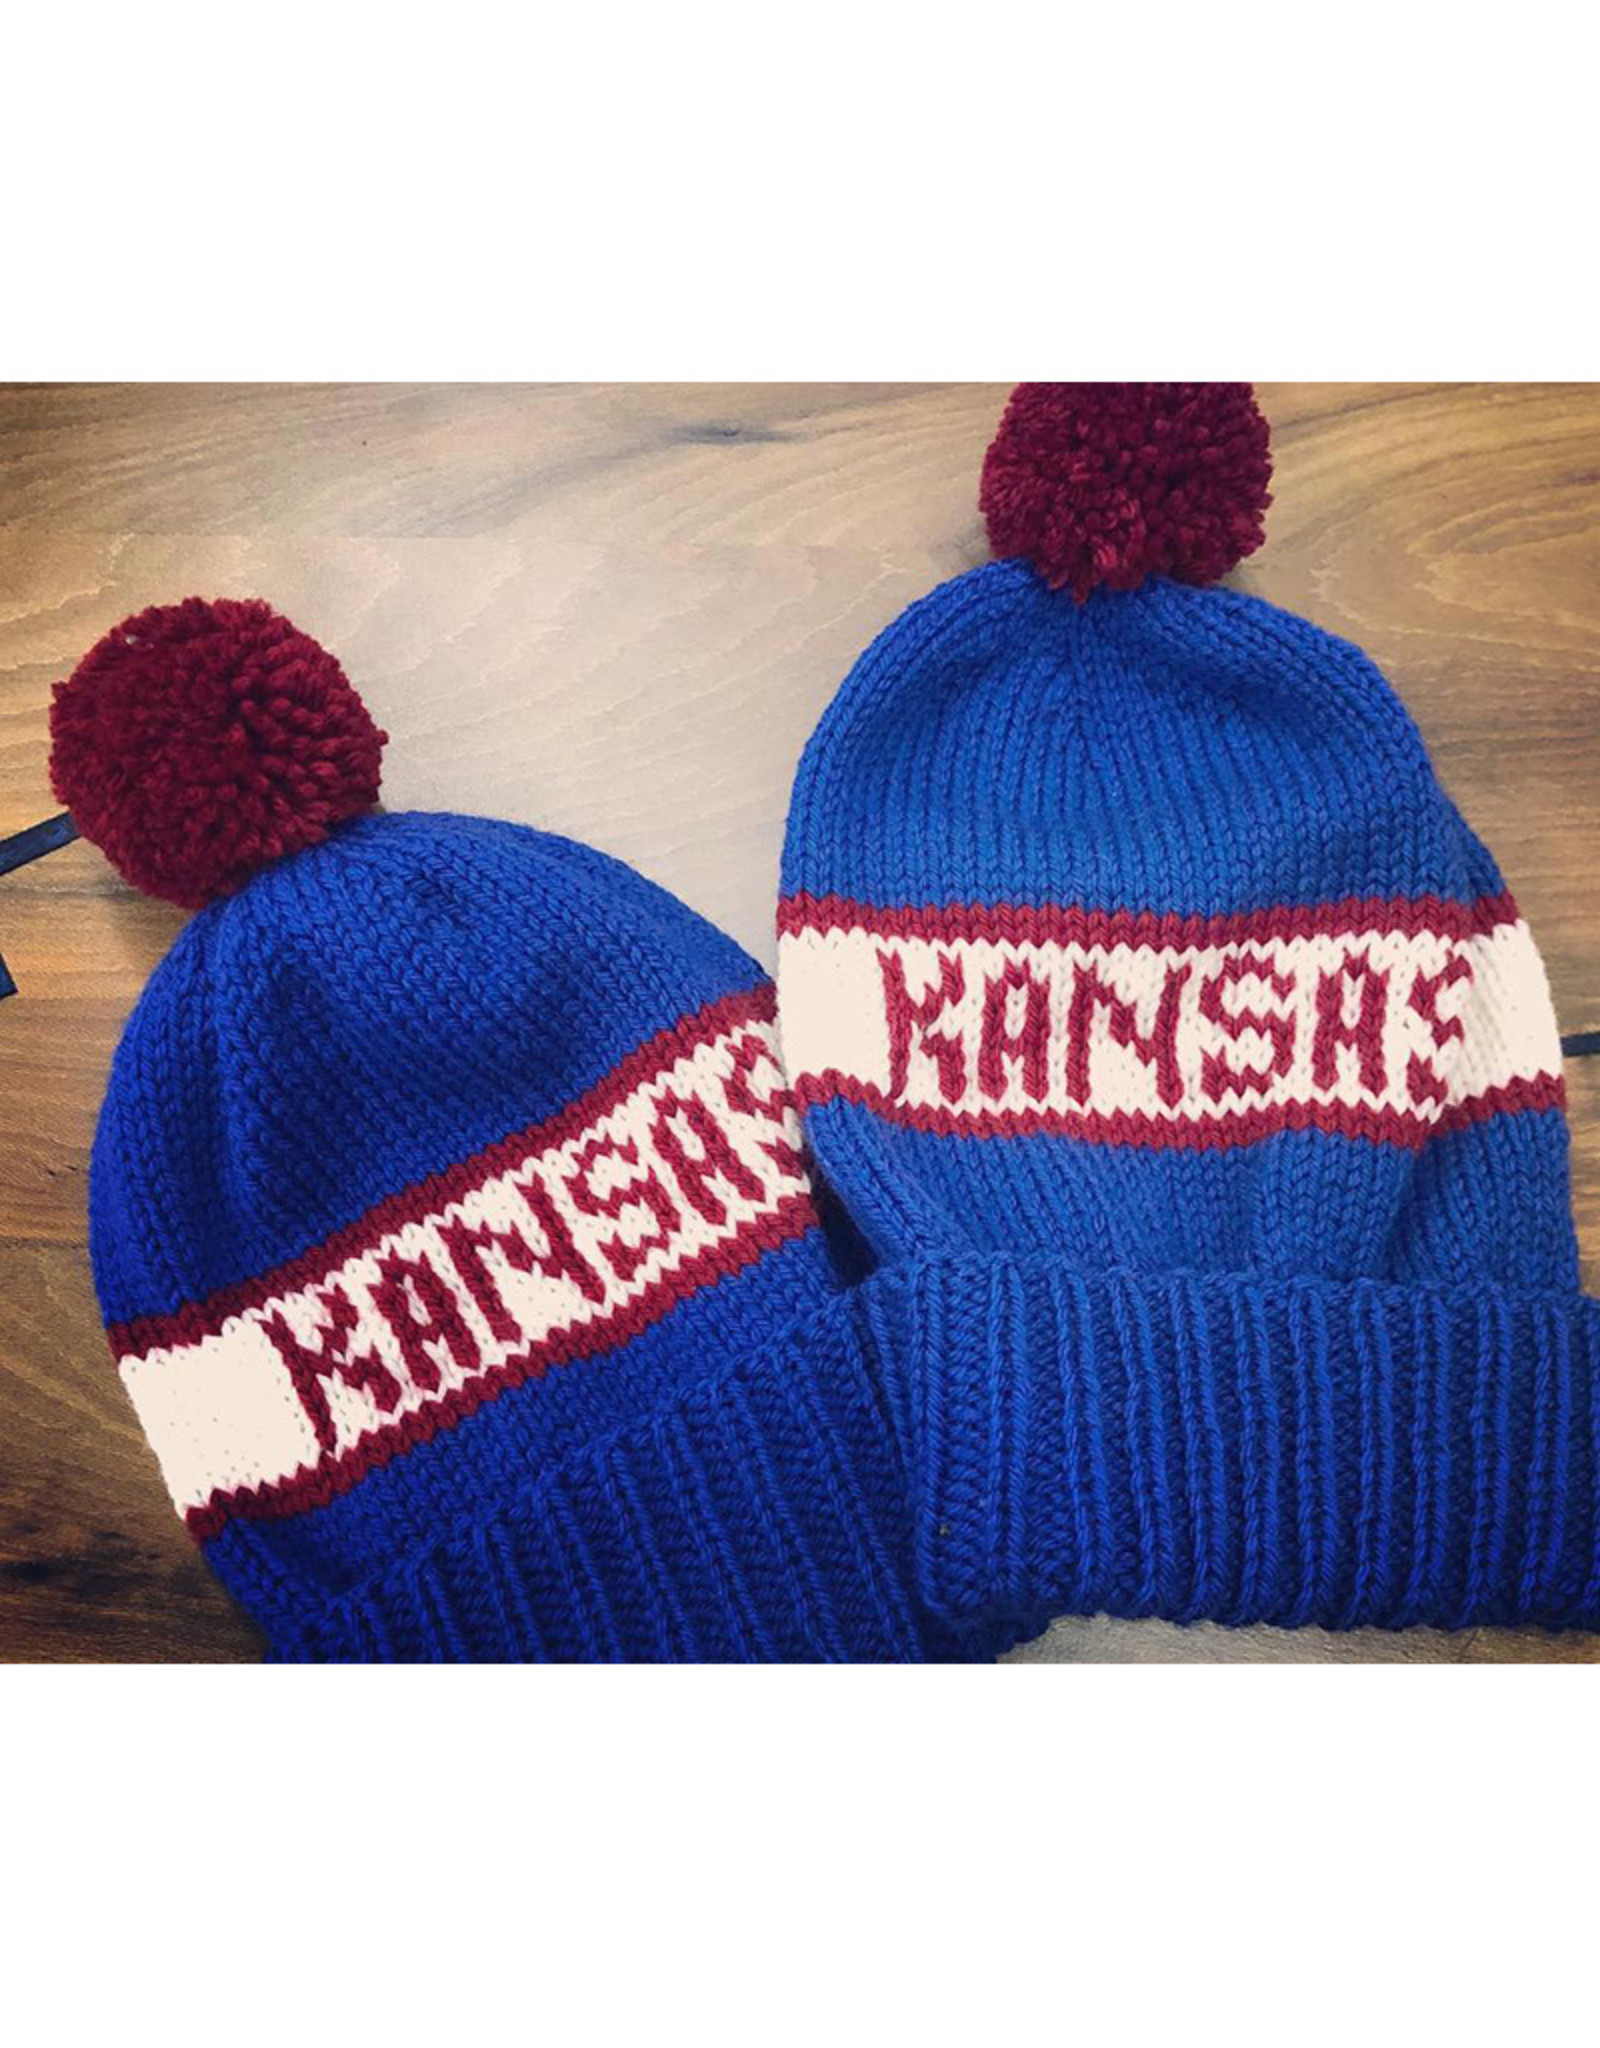 The Knit Hole KU Knit Hats by The Knit Hole